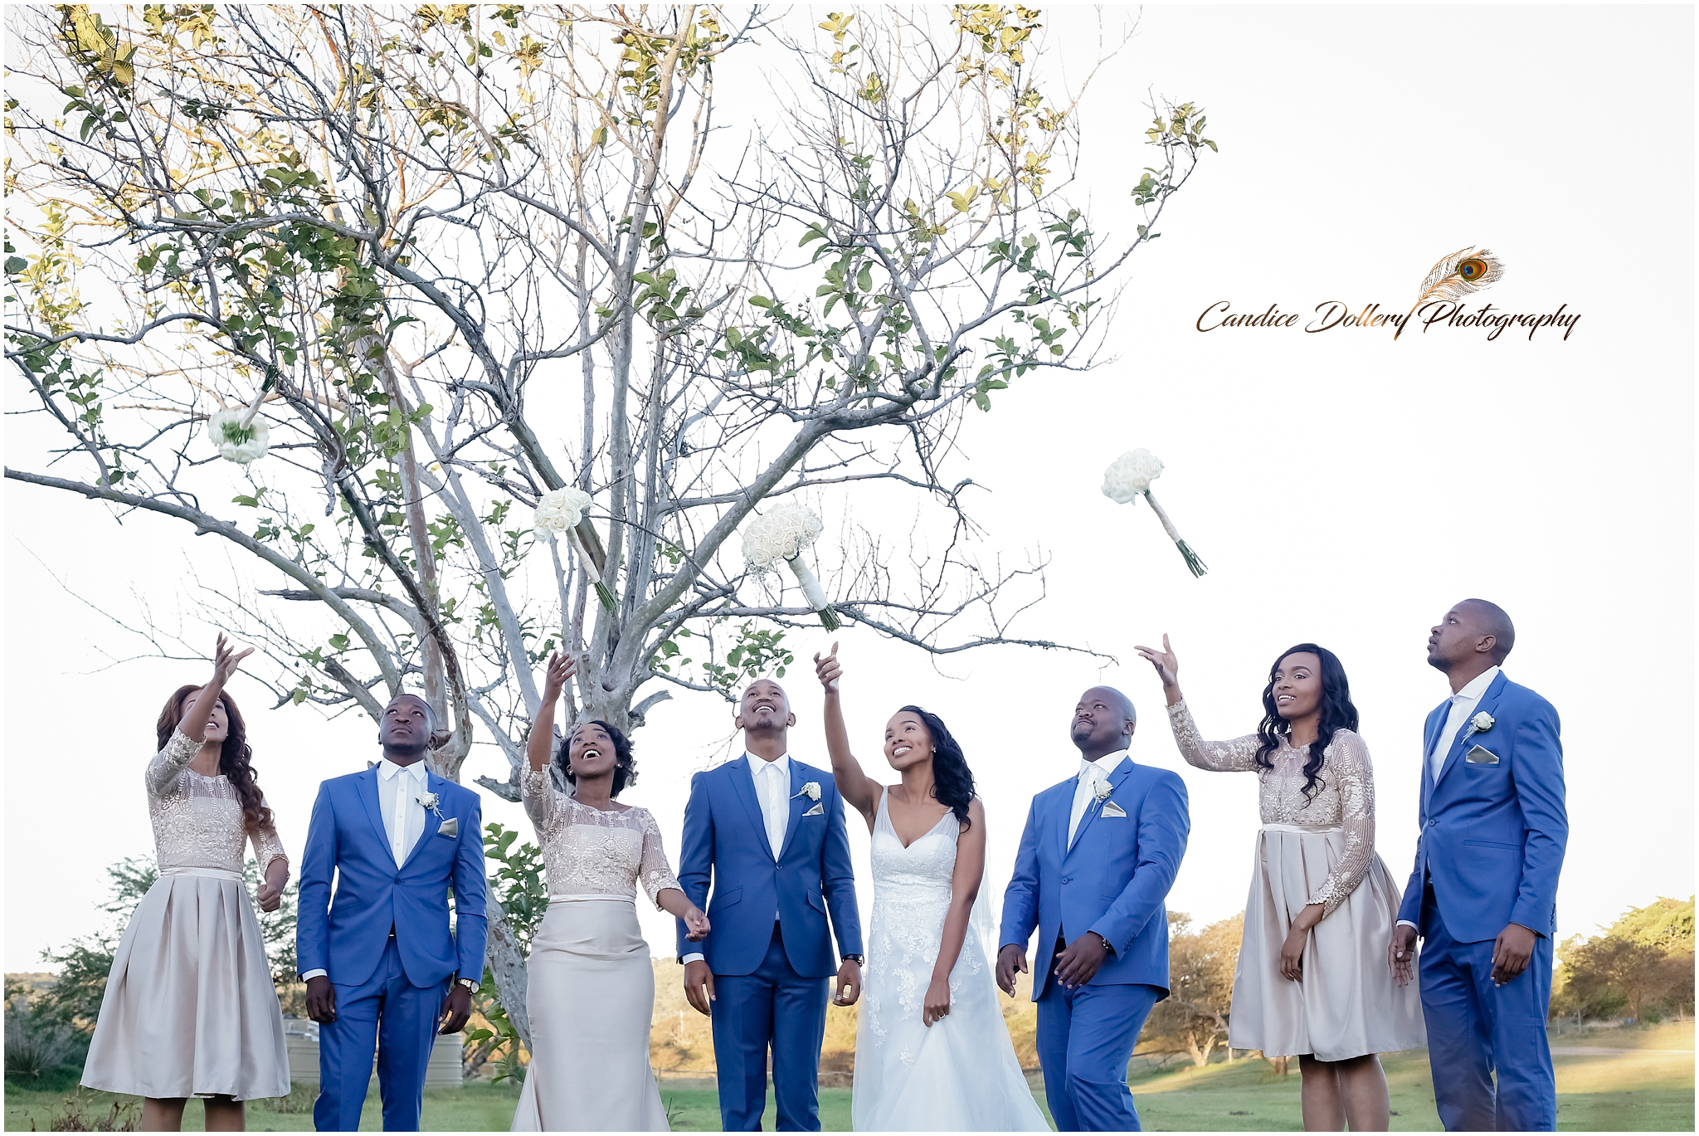 lelethu-kgotsos-wedding-candice-dollery-photography_1670